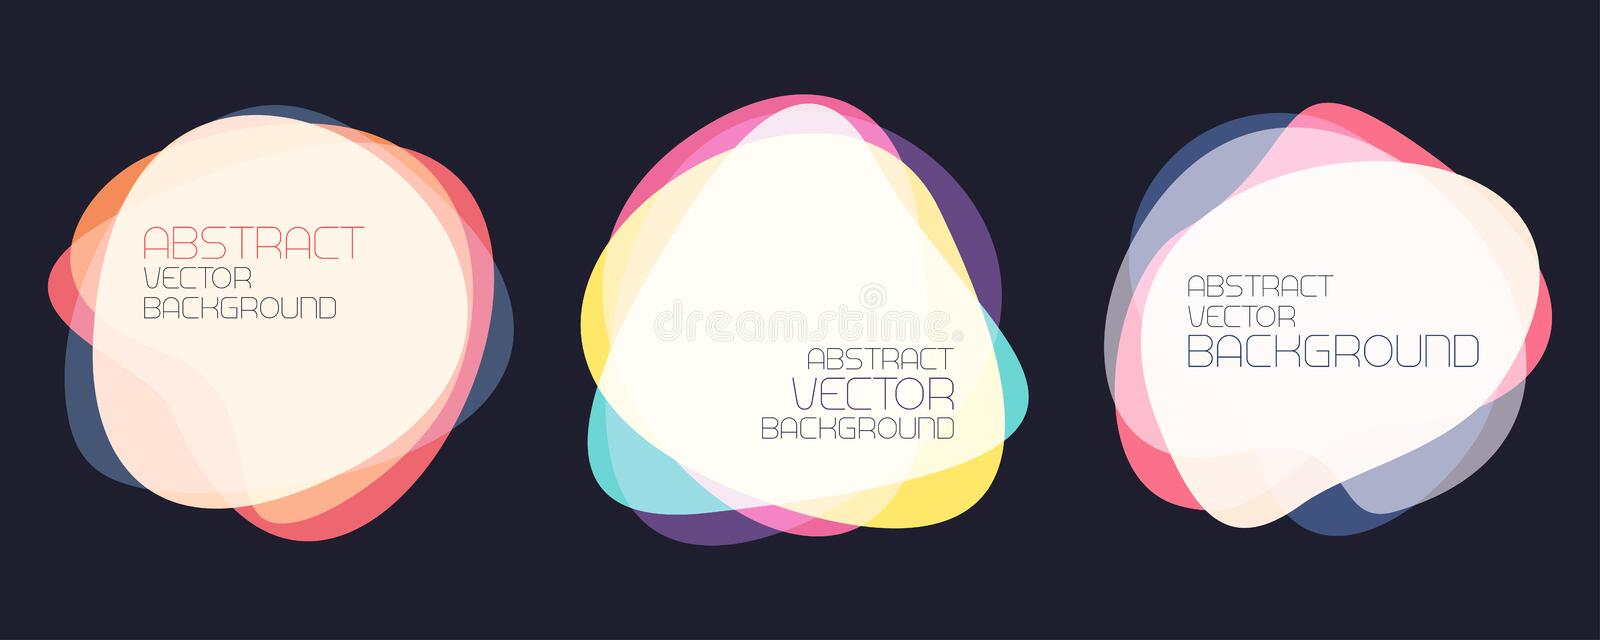 Set of abstract shapes. Colorful banners overlay shapes. Stock vector background vector illustration